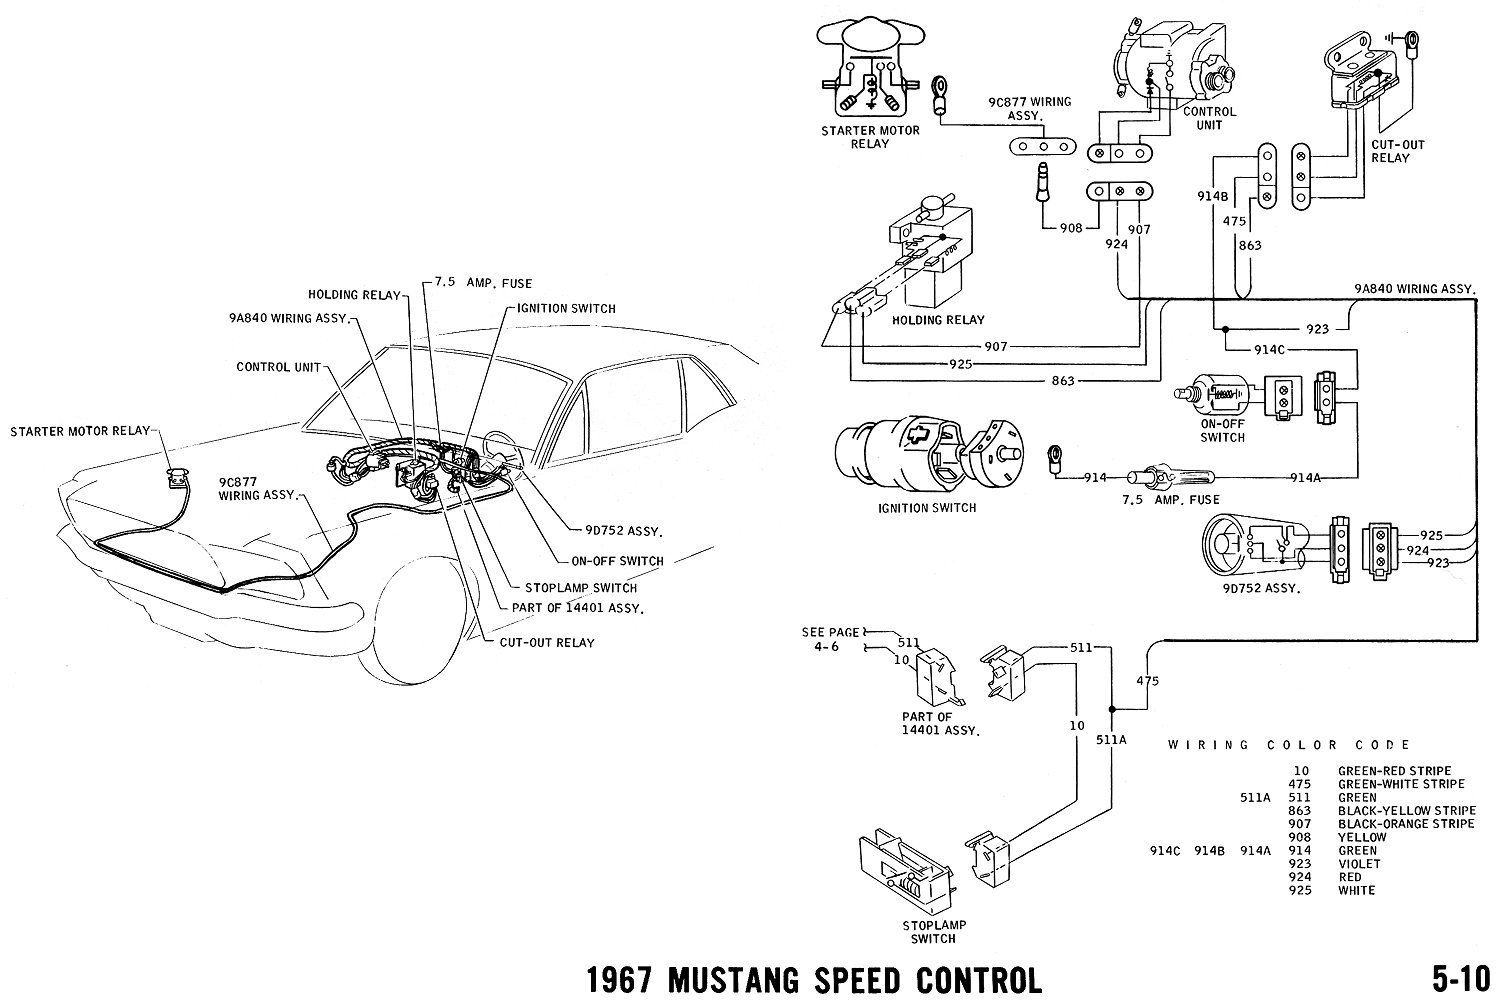 1967 Mustang Wiring And Vacuum Diagrams Average Joe Restoration Alternator Starter Diagram Pictorial Schematic